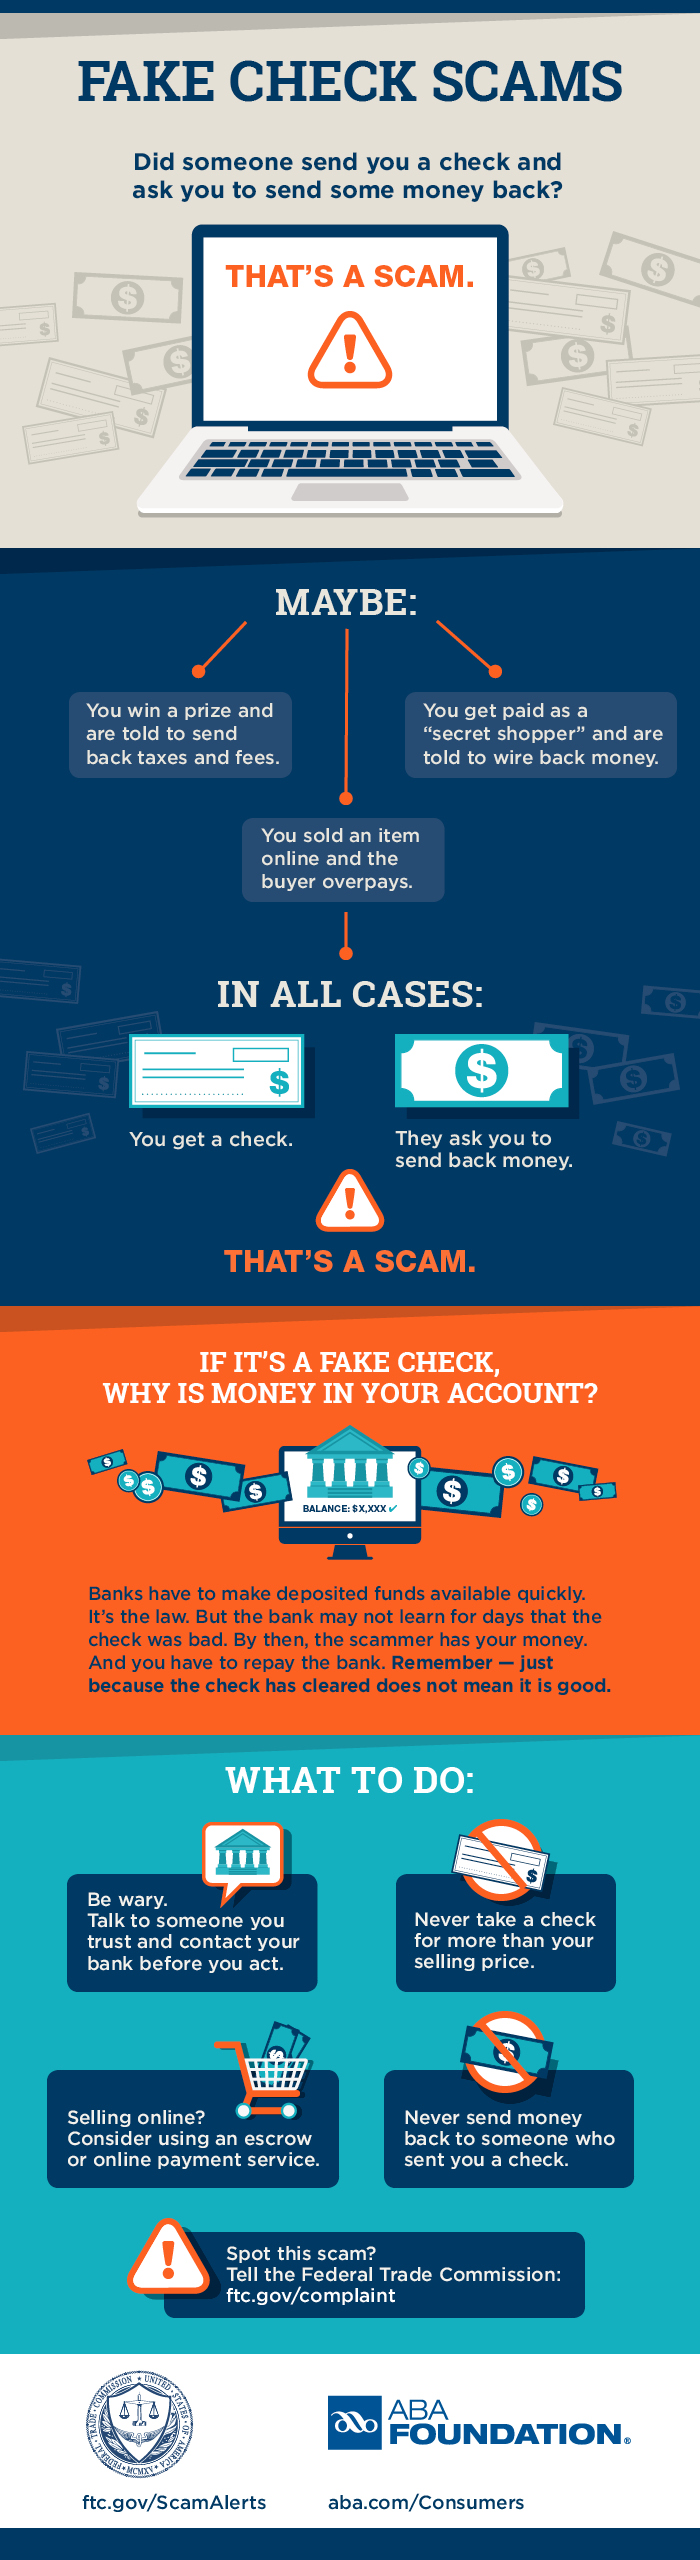 Fake Check Scam Infographic